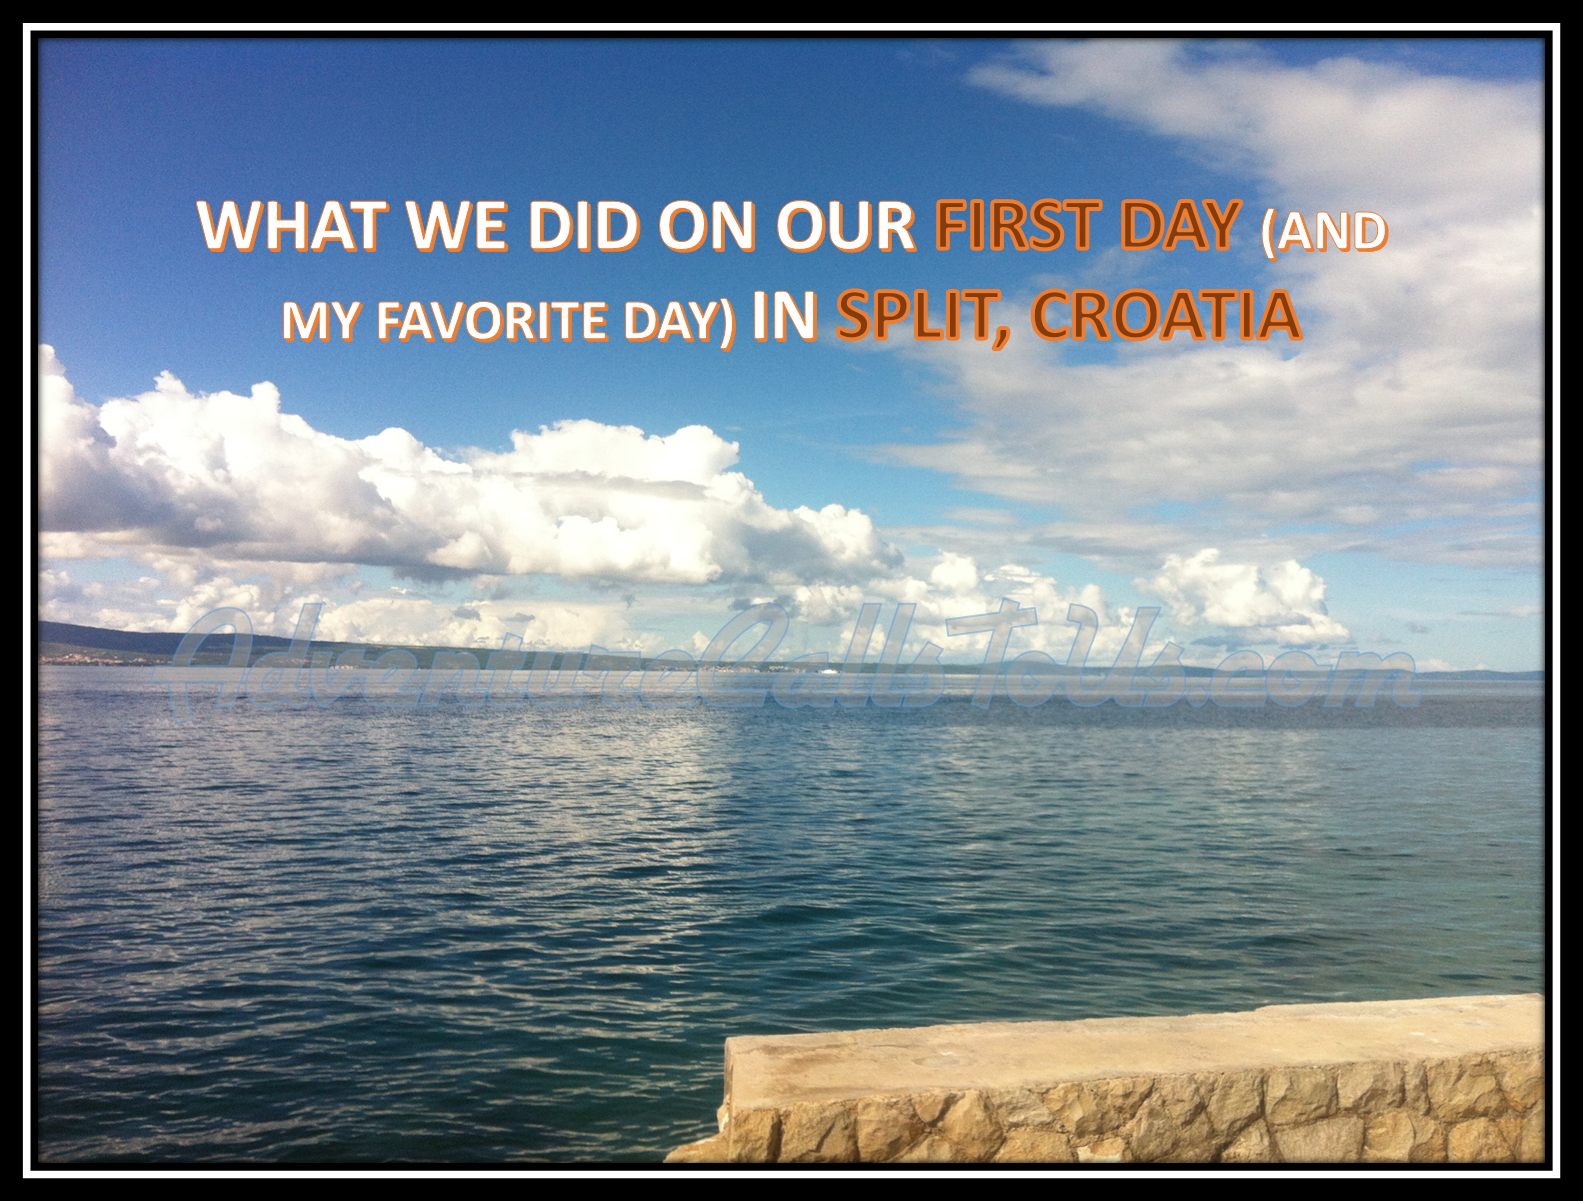 WHAT WE DID ON OUR FIRST DAY in SPLIT, CROATIA